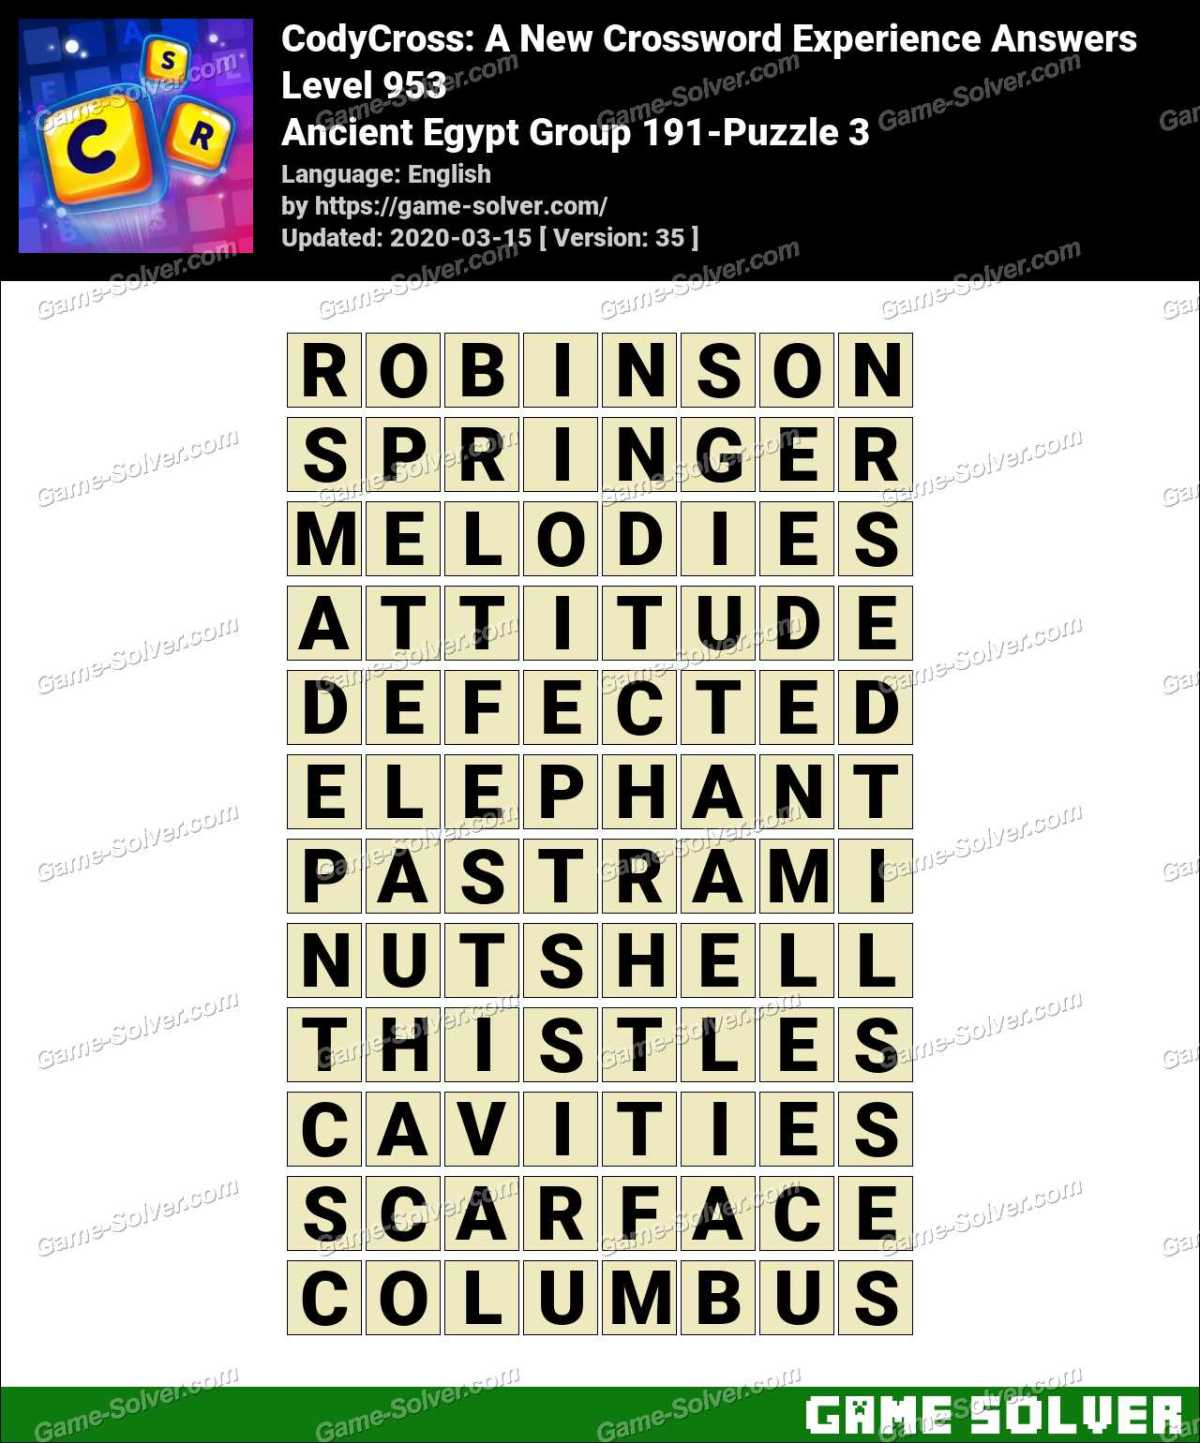 CodyCross Ancient Egypt Group 191-Puzzle 3 Answers